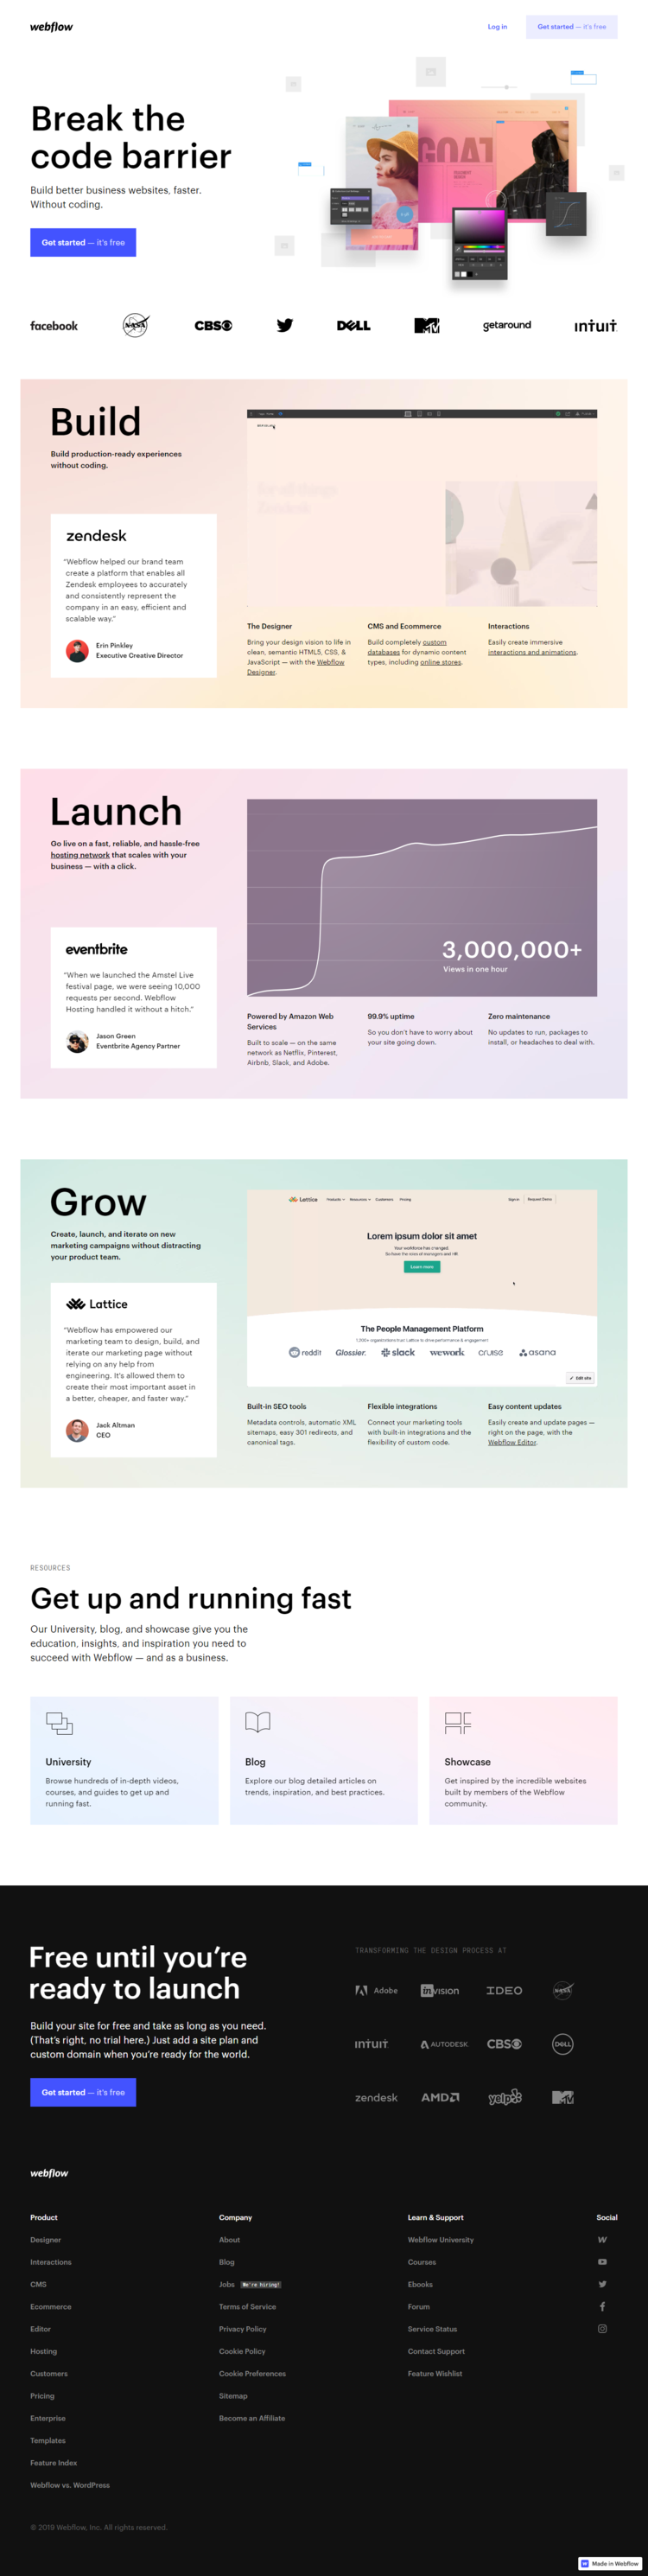 How to recreate the Webflow landing page look and feel in Ontraport